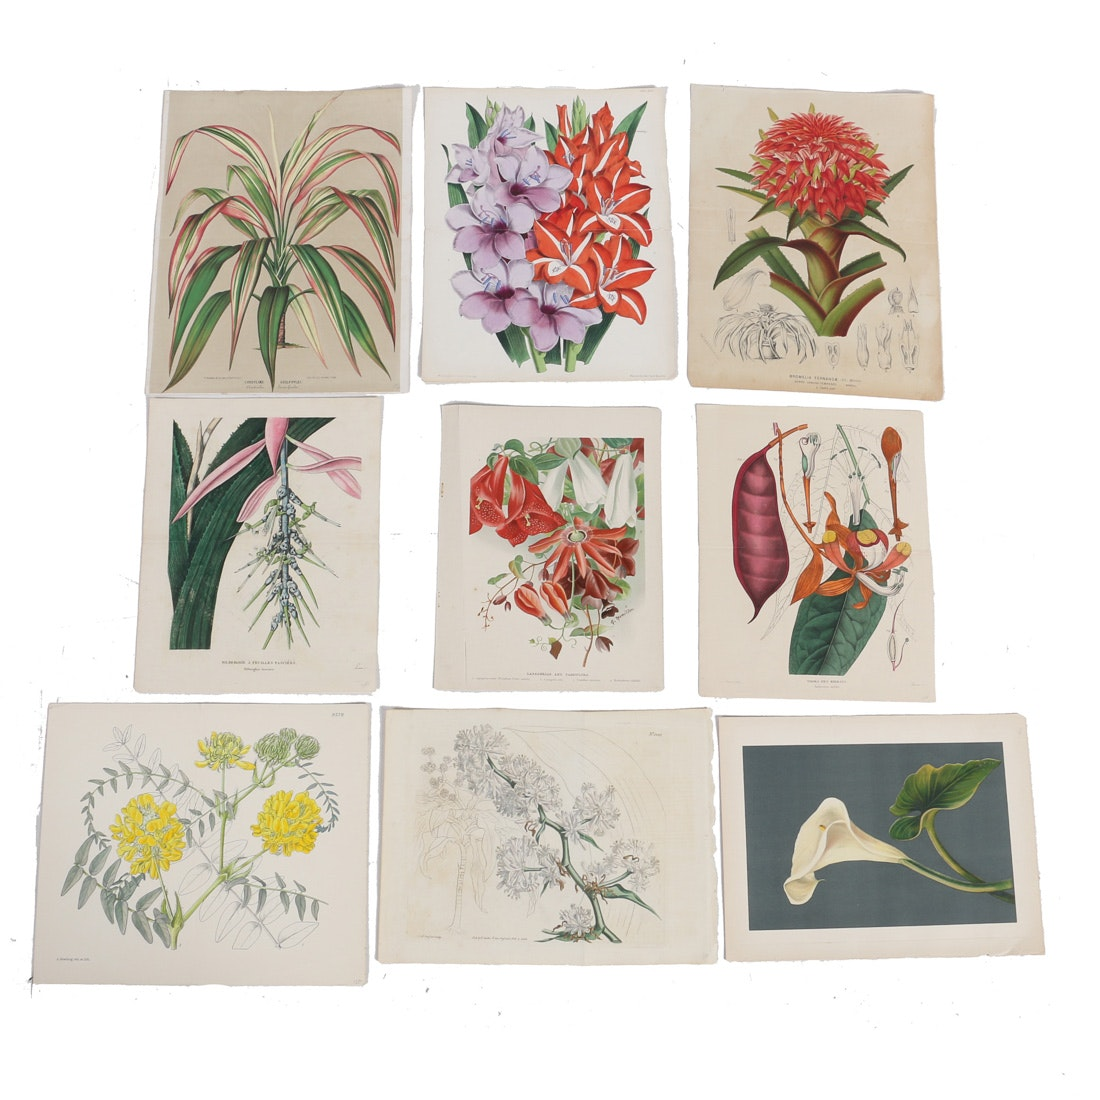 Collection of Hand-Colored Botanical Lithographs